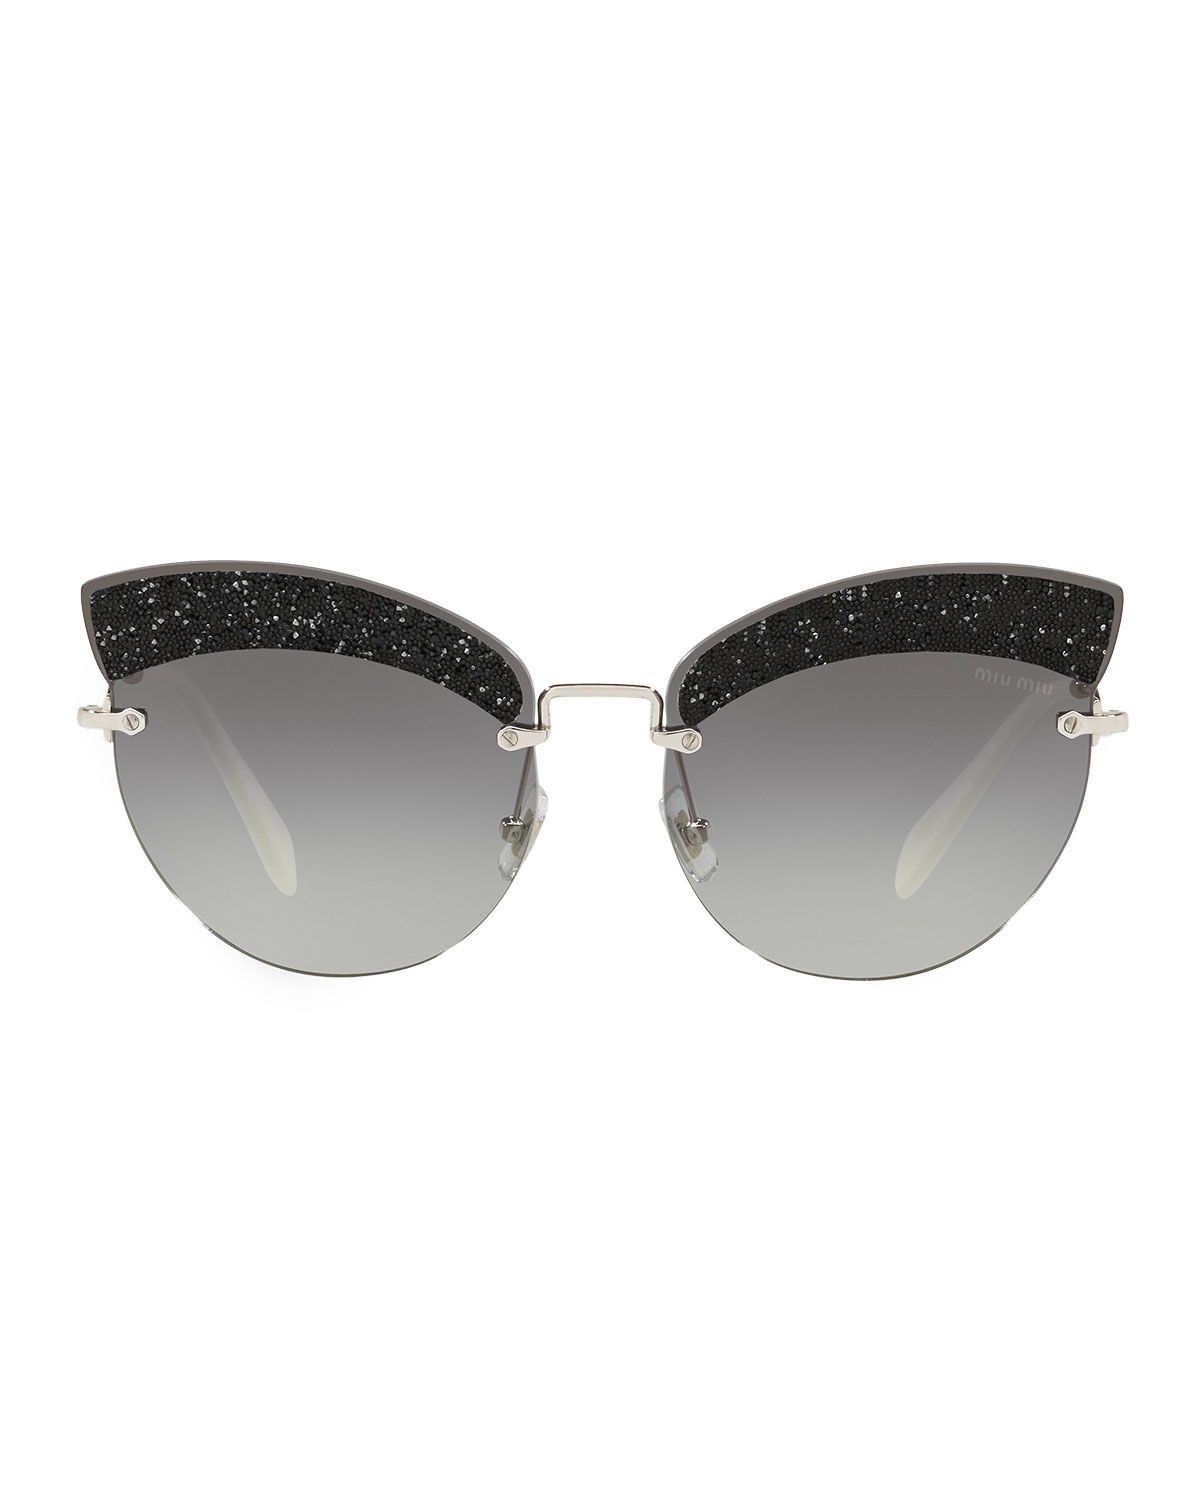 248cca41480 Miu Miu Semi-Rimless Glittered Cat-Eye Sunglasses